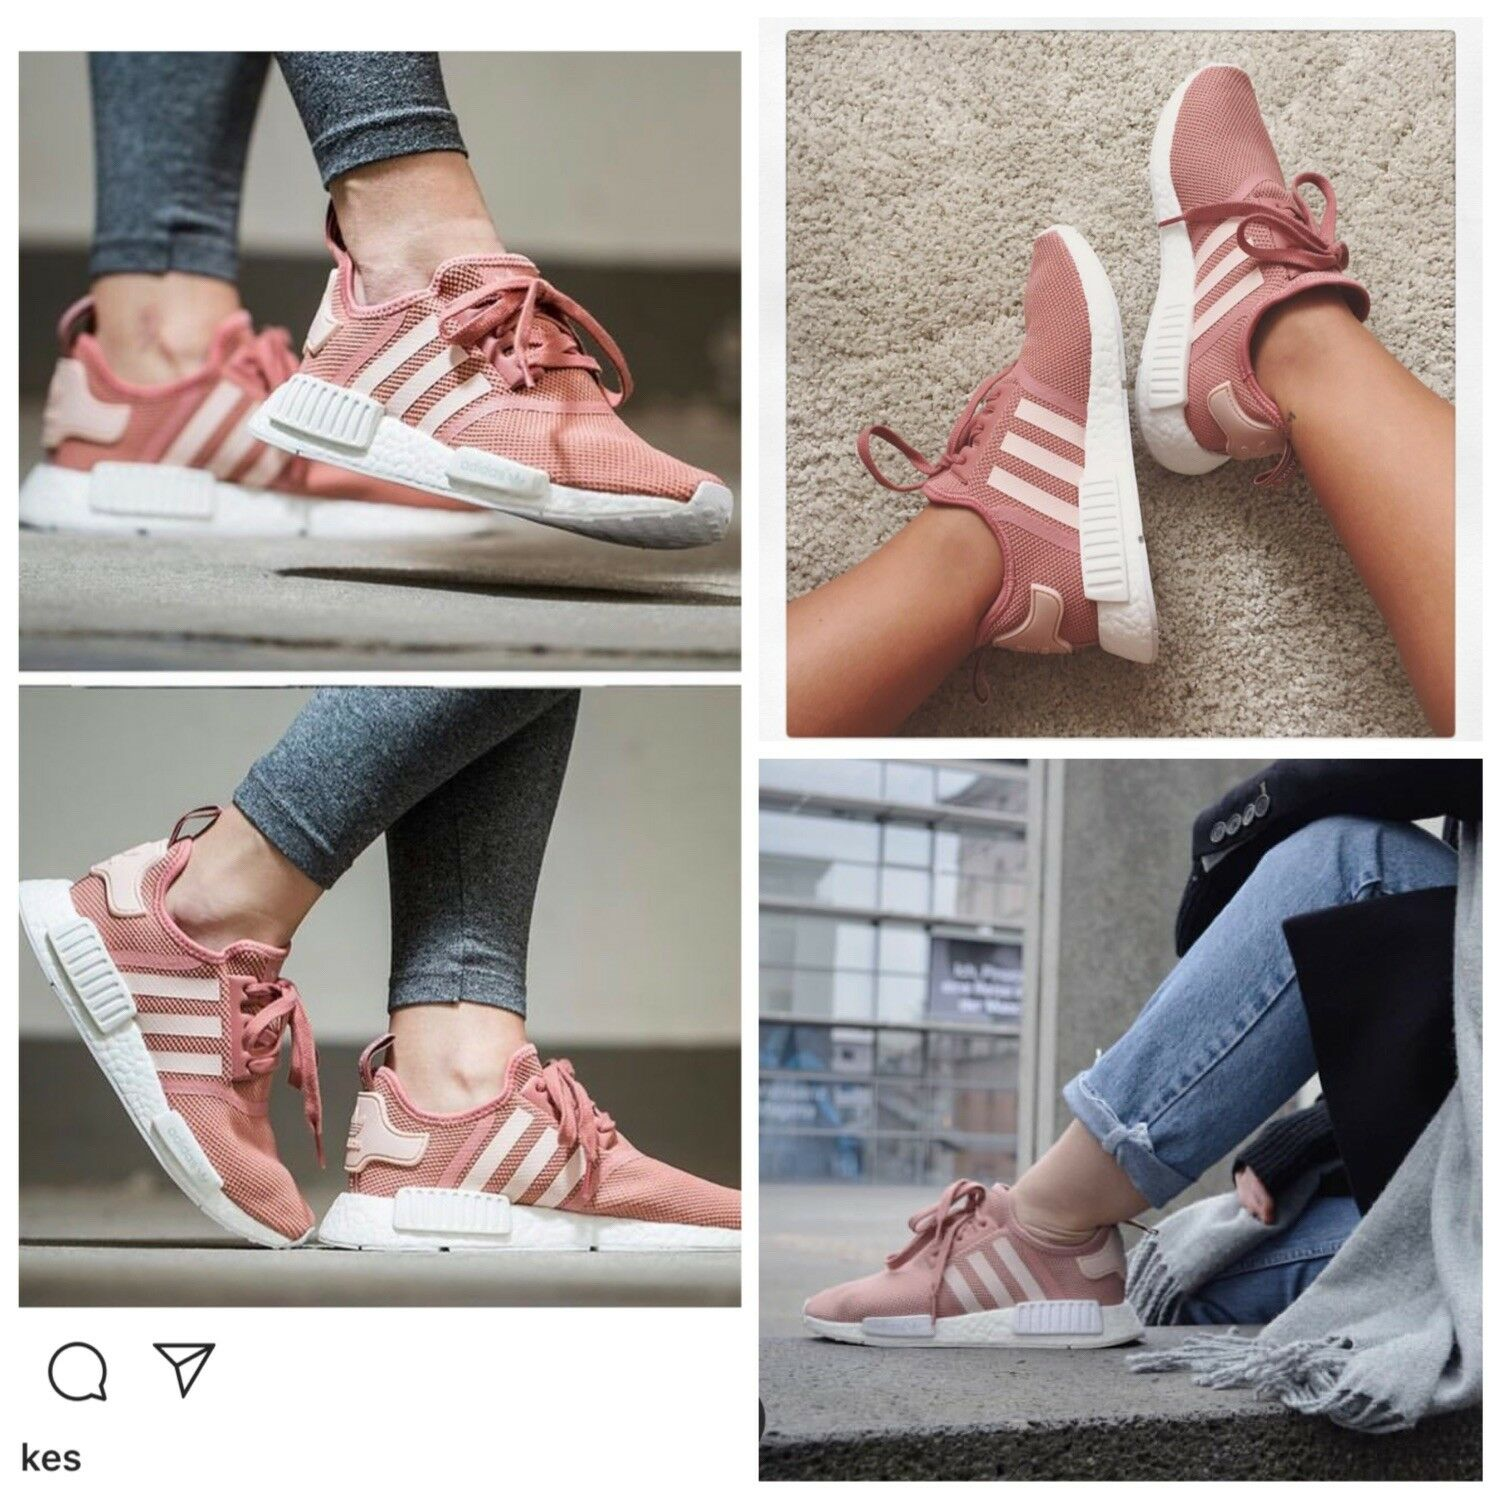 Authentic Adidas Original Nmd R1 Raw Pink Uk5 EU 38